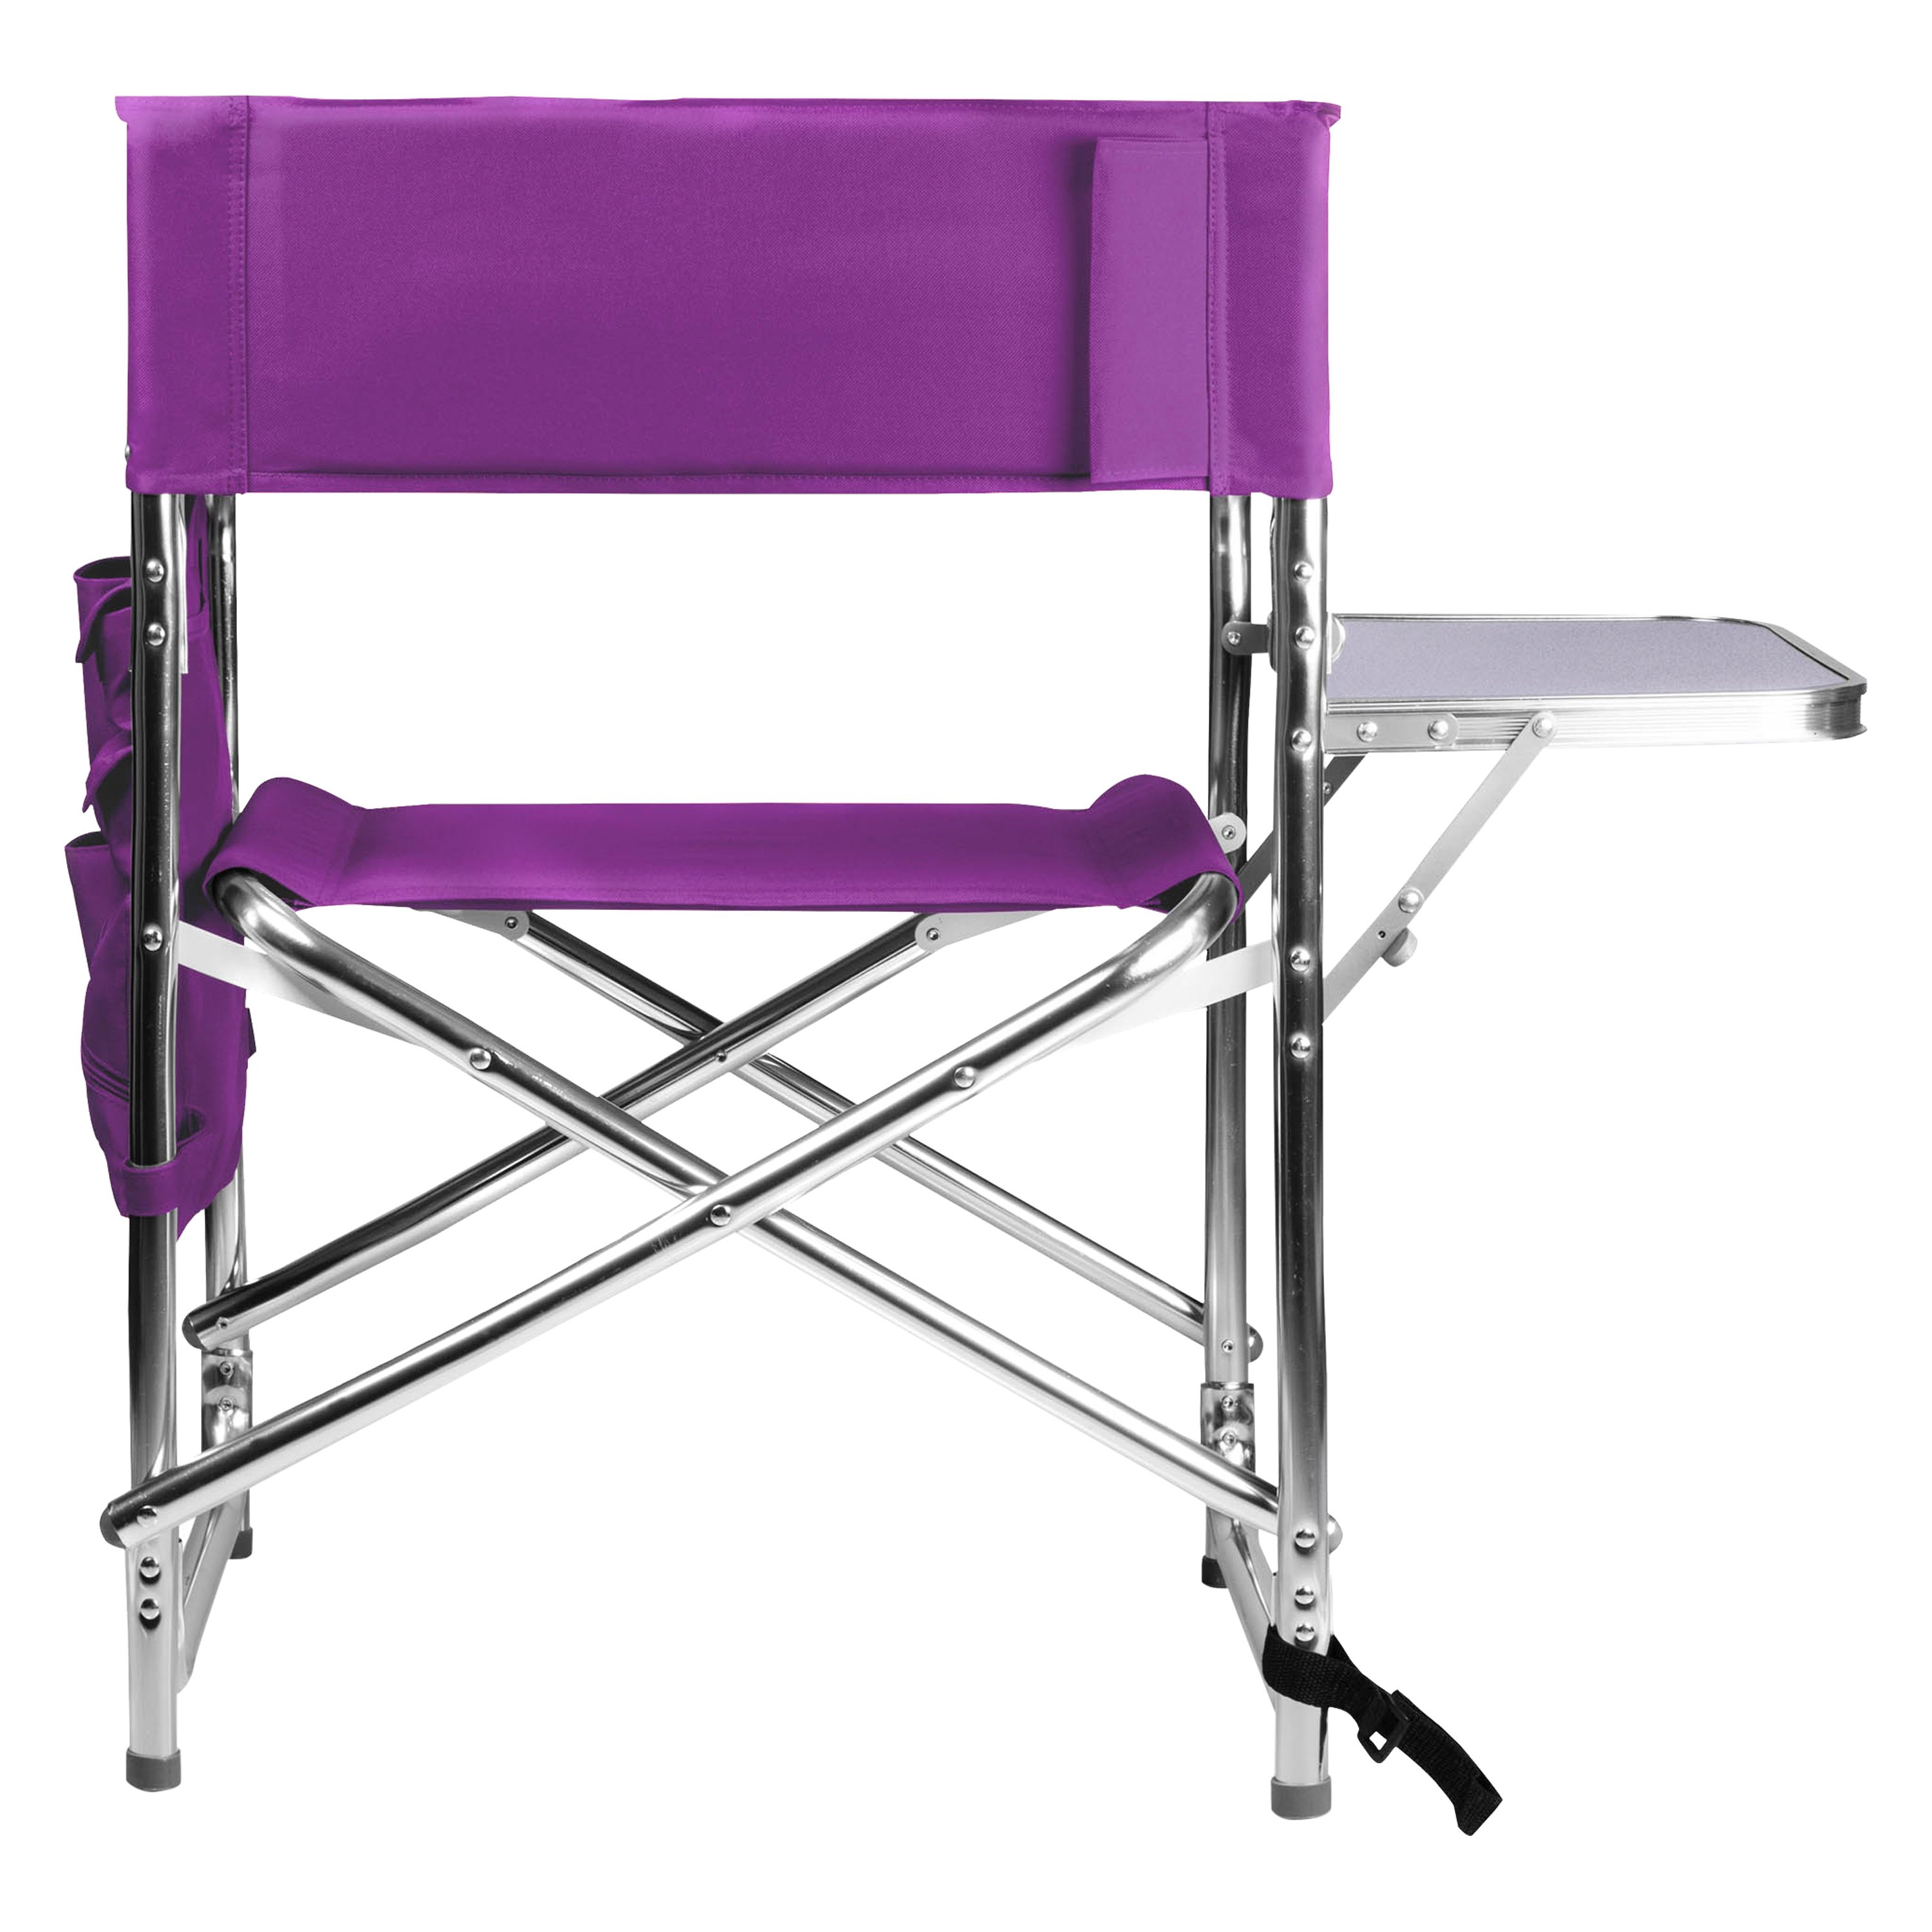 picnic time sports chair gaming with speakers and vibration 809 00 101 000 0 purple chairpicnic